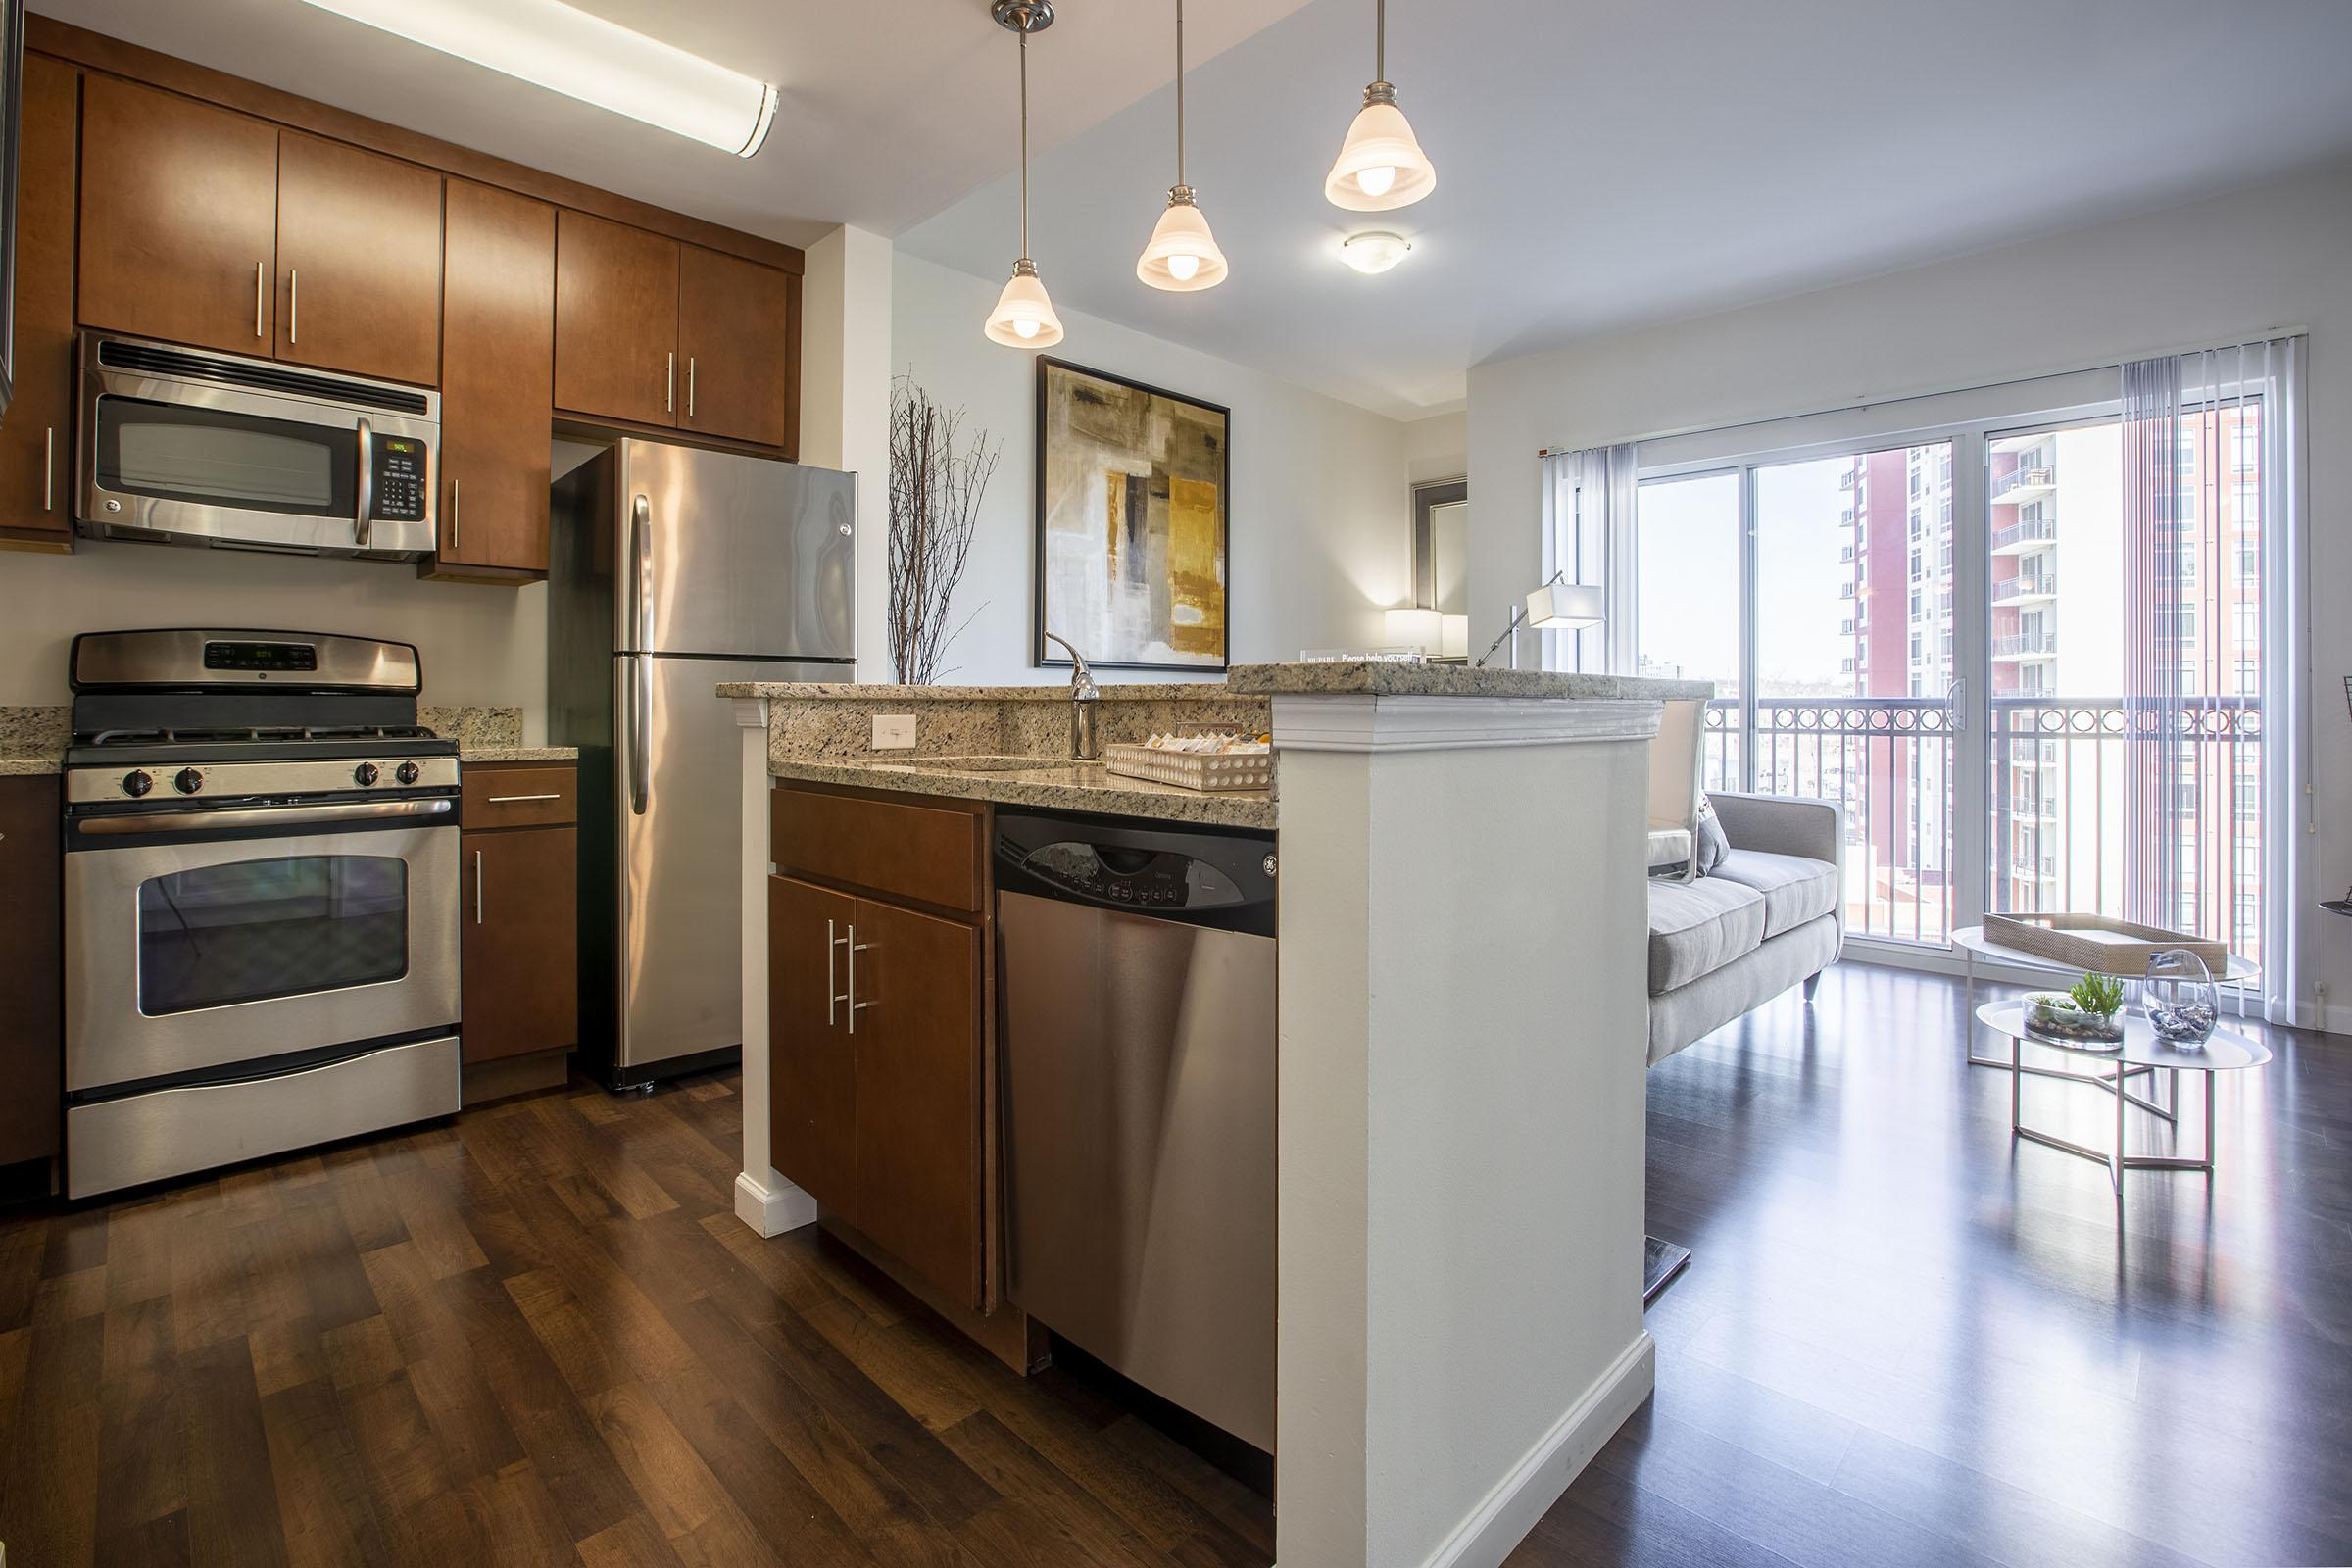 a room filled with furniture and a stove in a kitchen